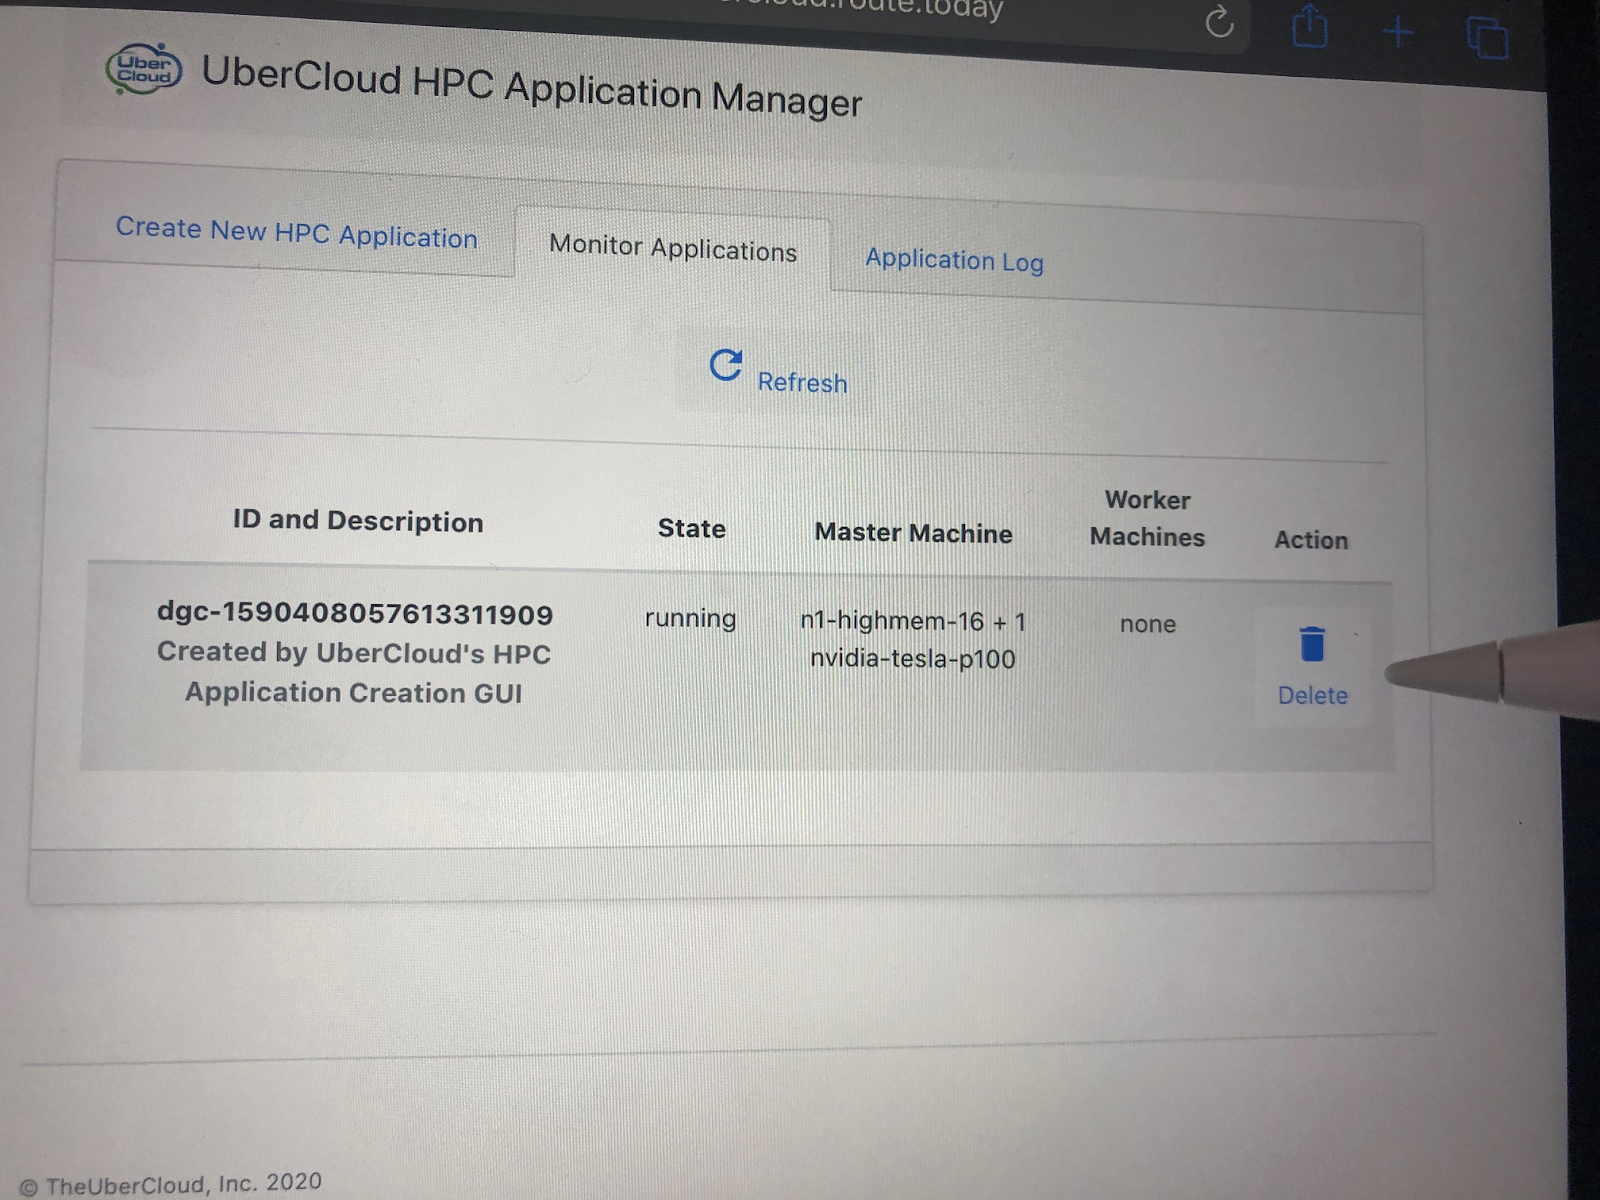 UberCloud HPC Application Manager